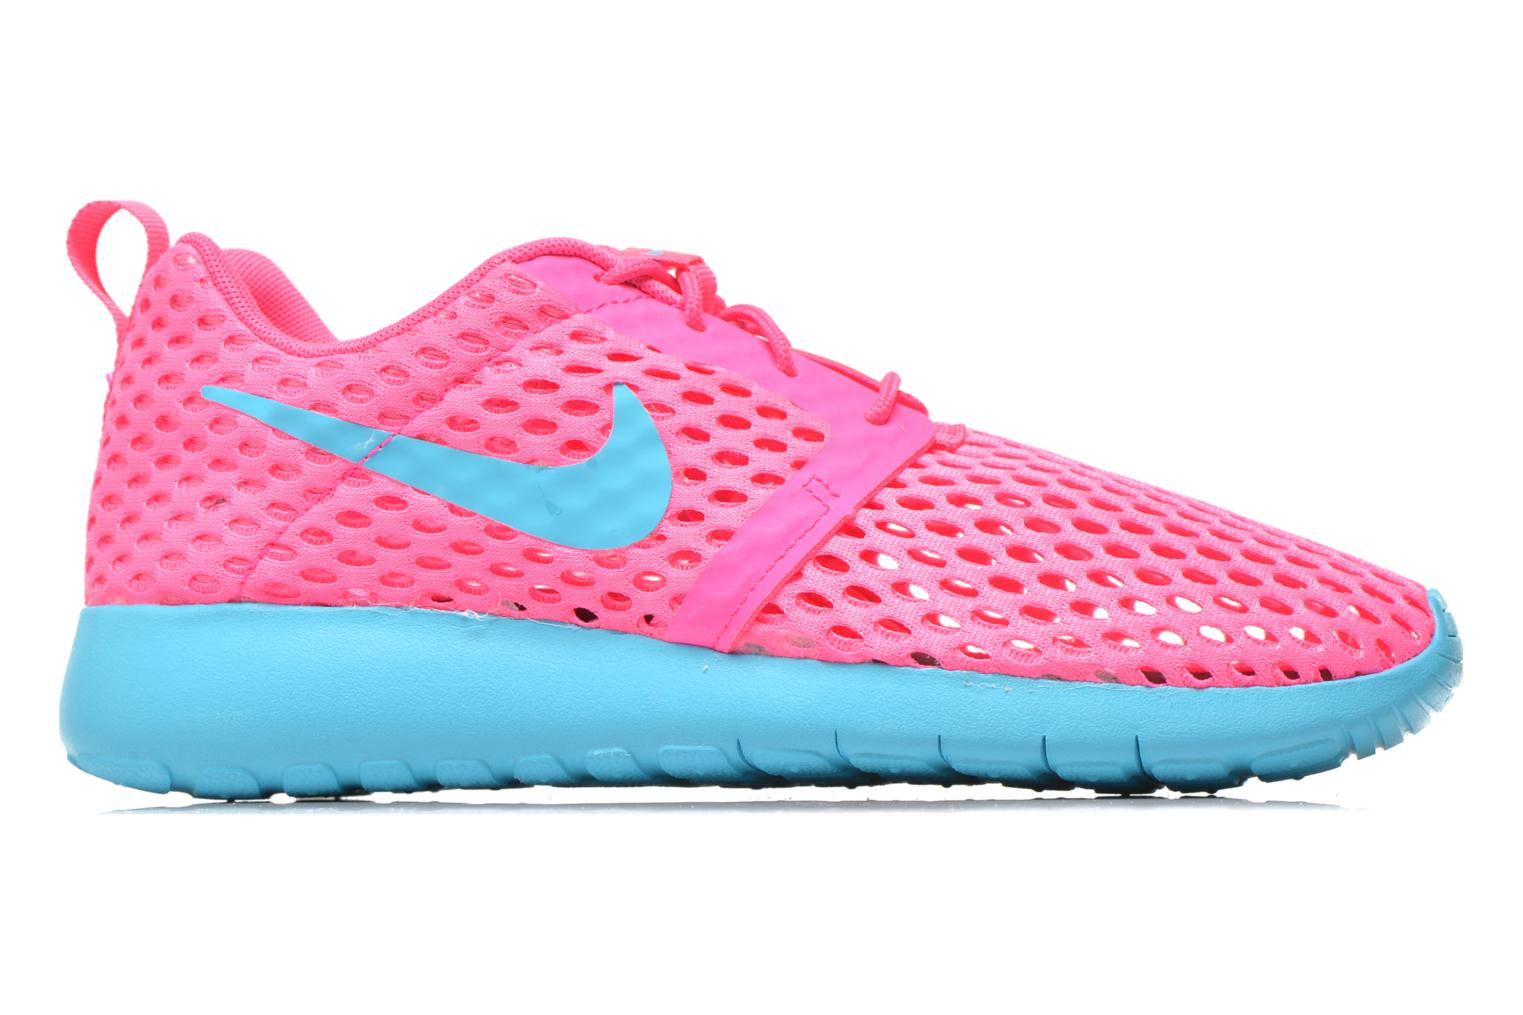 ROSHE ONE FLIGHT WEIGHT (GS) Pink Blast Gamma Blue